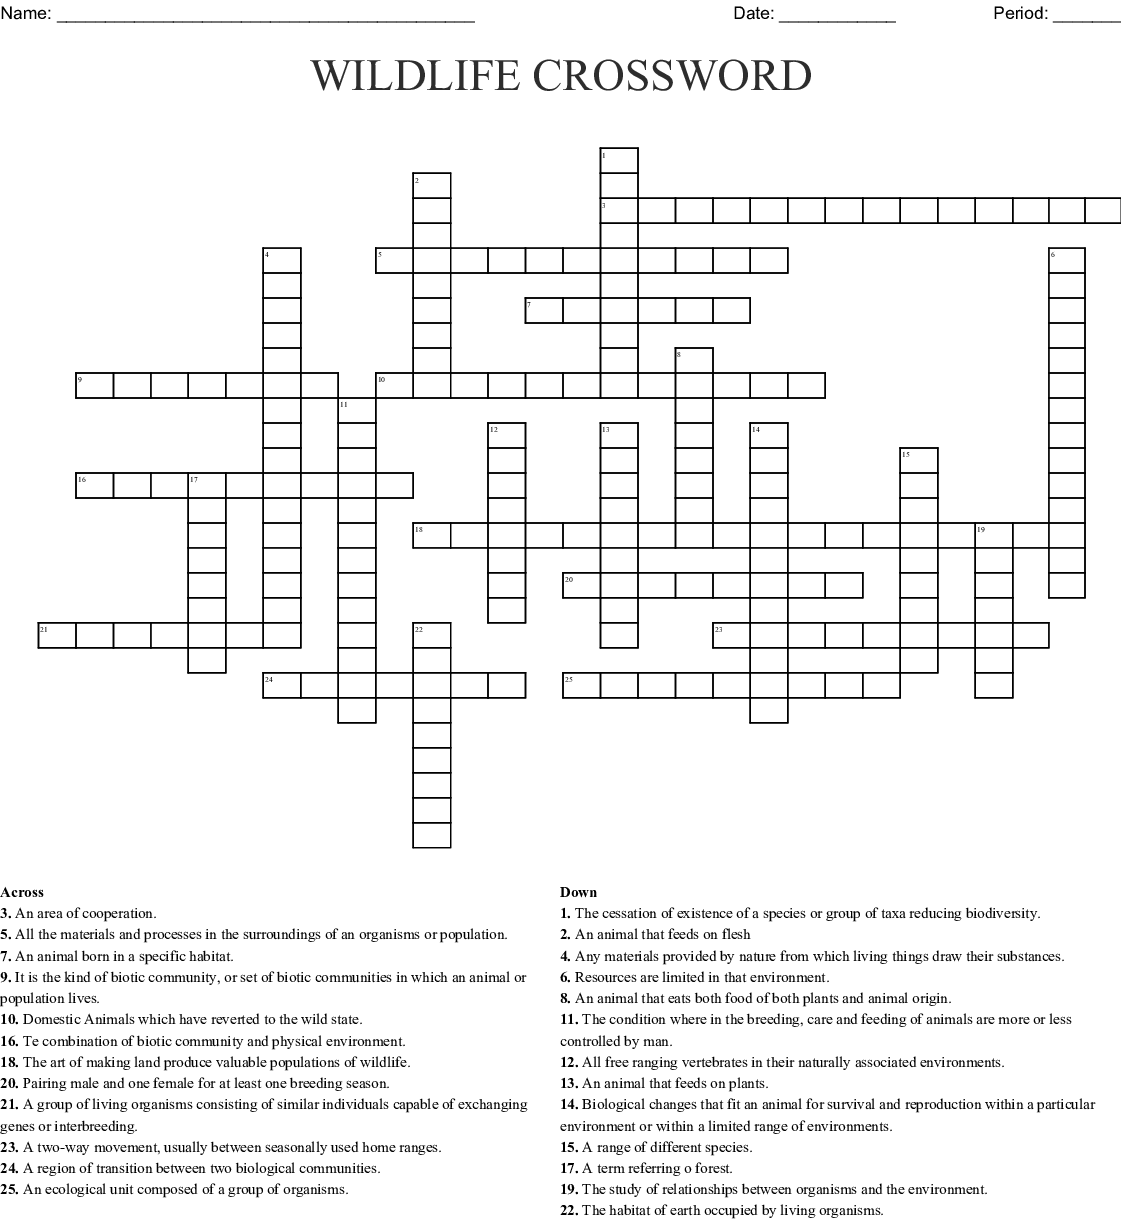 Wildlife Management Crossword